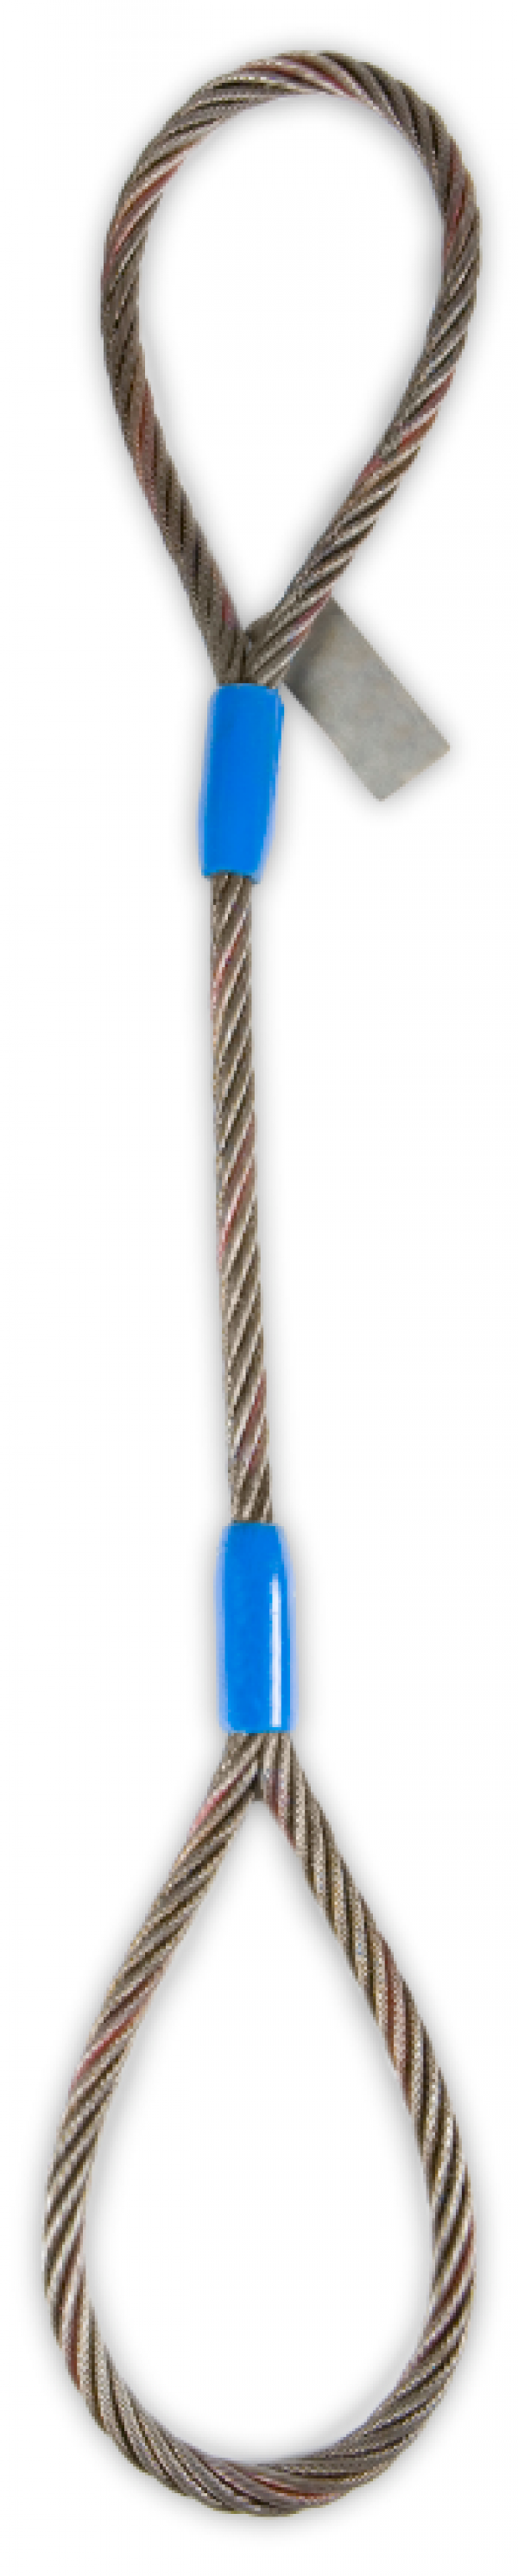 "3/4"" Eye & Eye Wire Rope Sling - 11,200(Lbs) Vertical WLL"